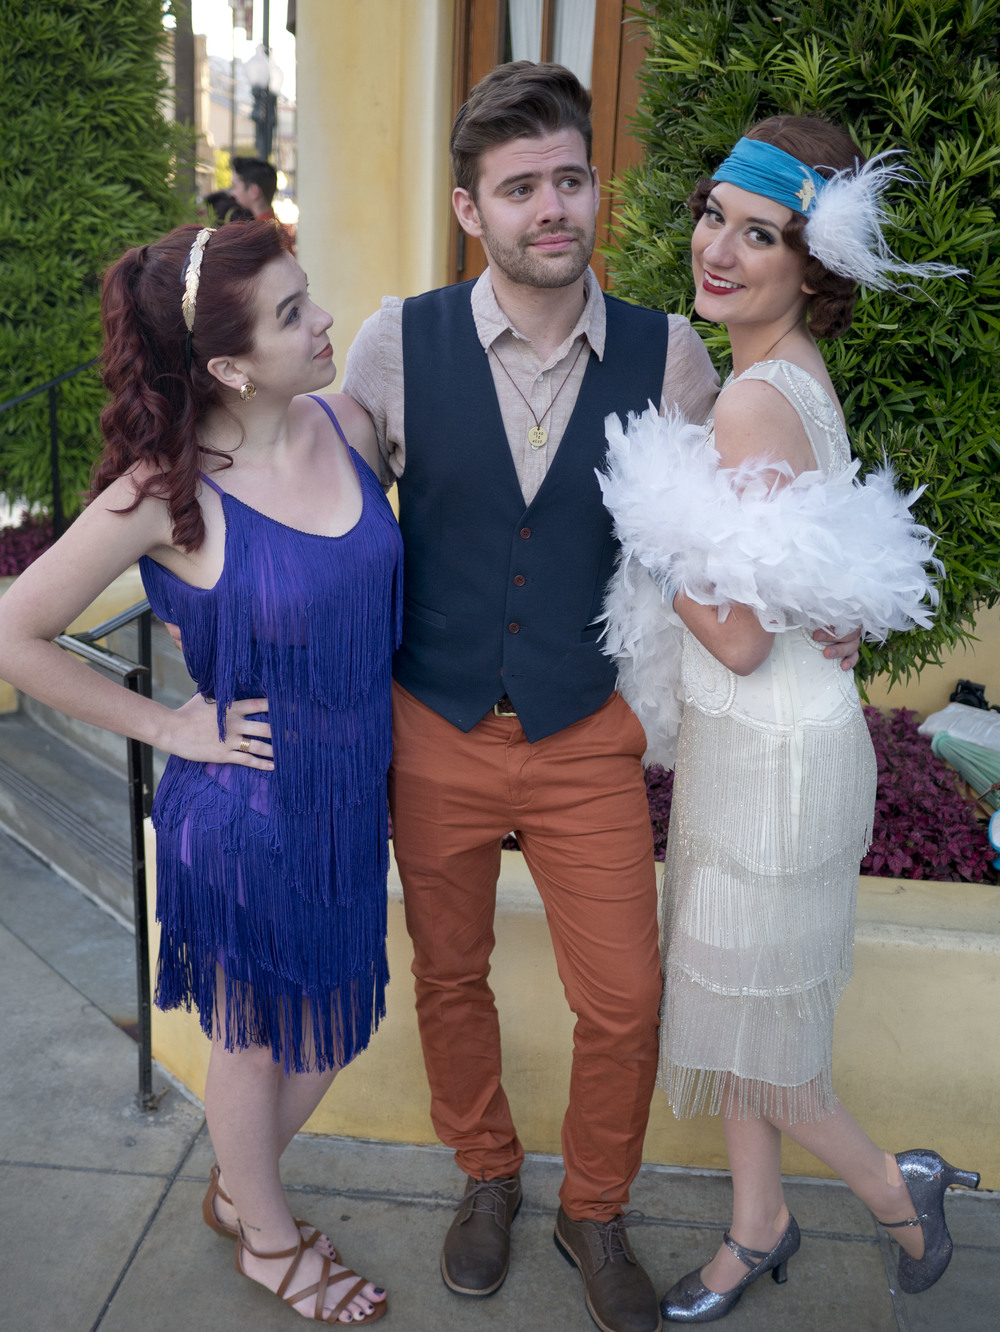 5-2-16 Spring Dapper Day 001.jpg